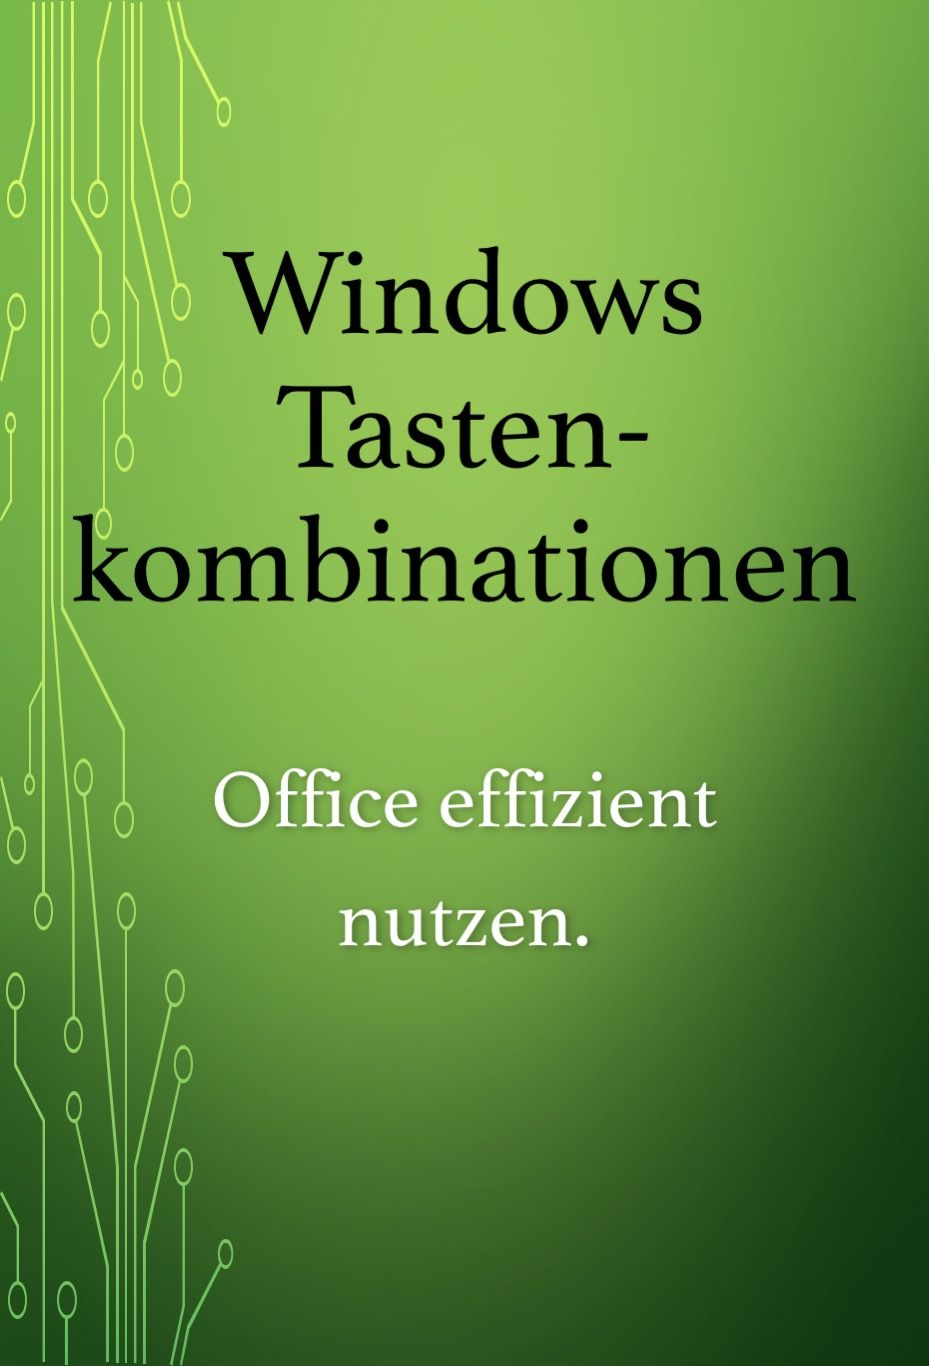 Windows Tastenkombinationen: Hilfreiche shortcuts für Office nutzen. #programingsoftware